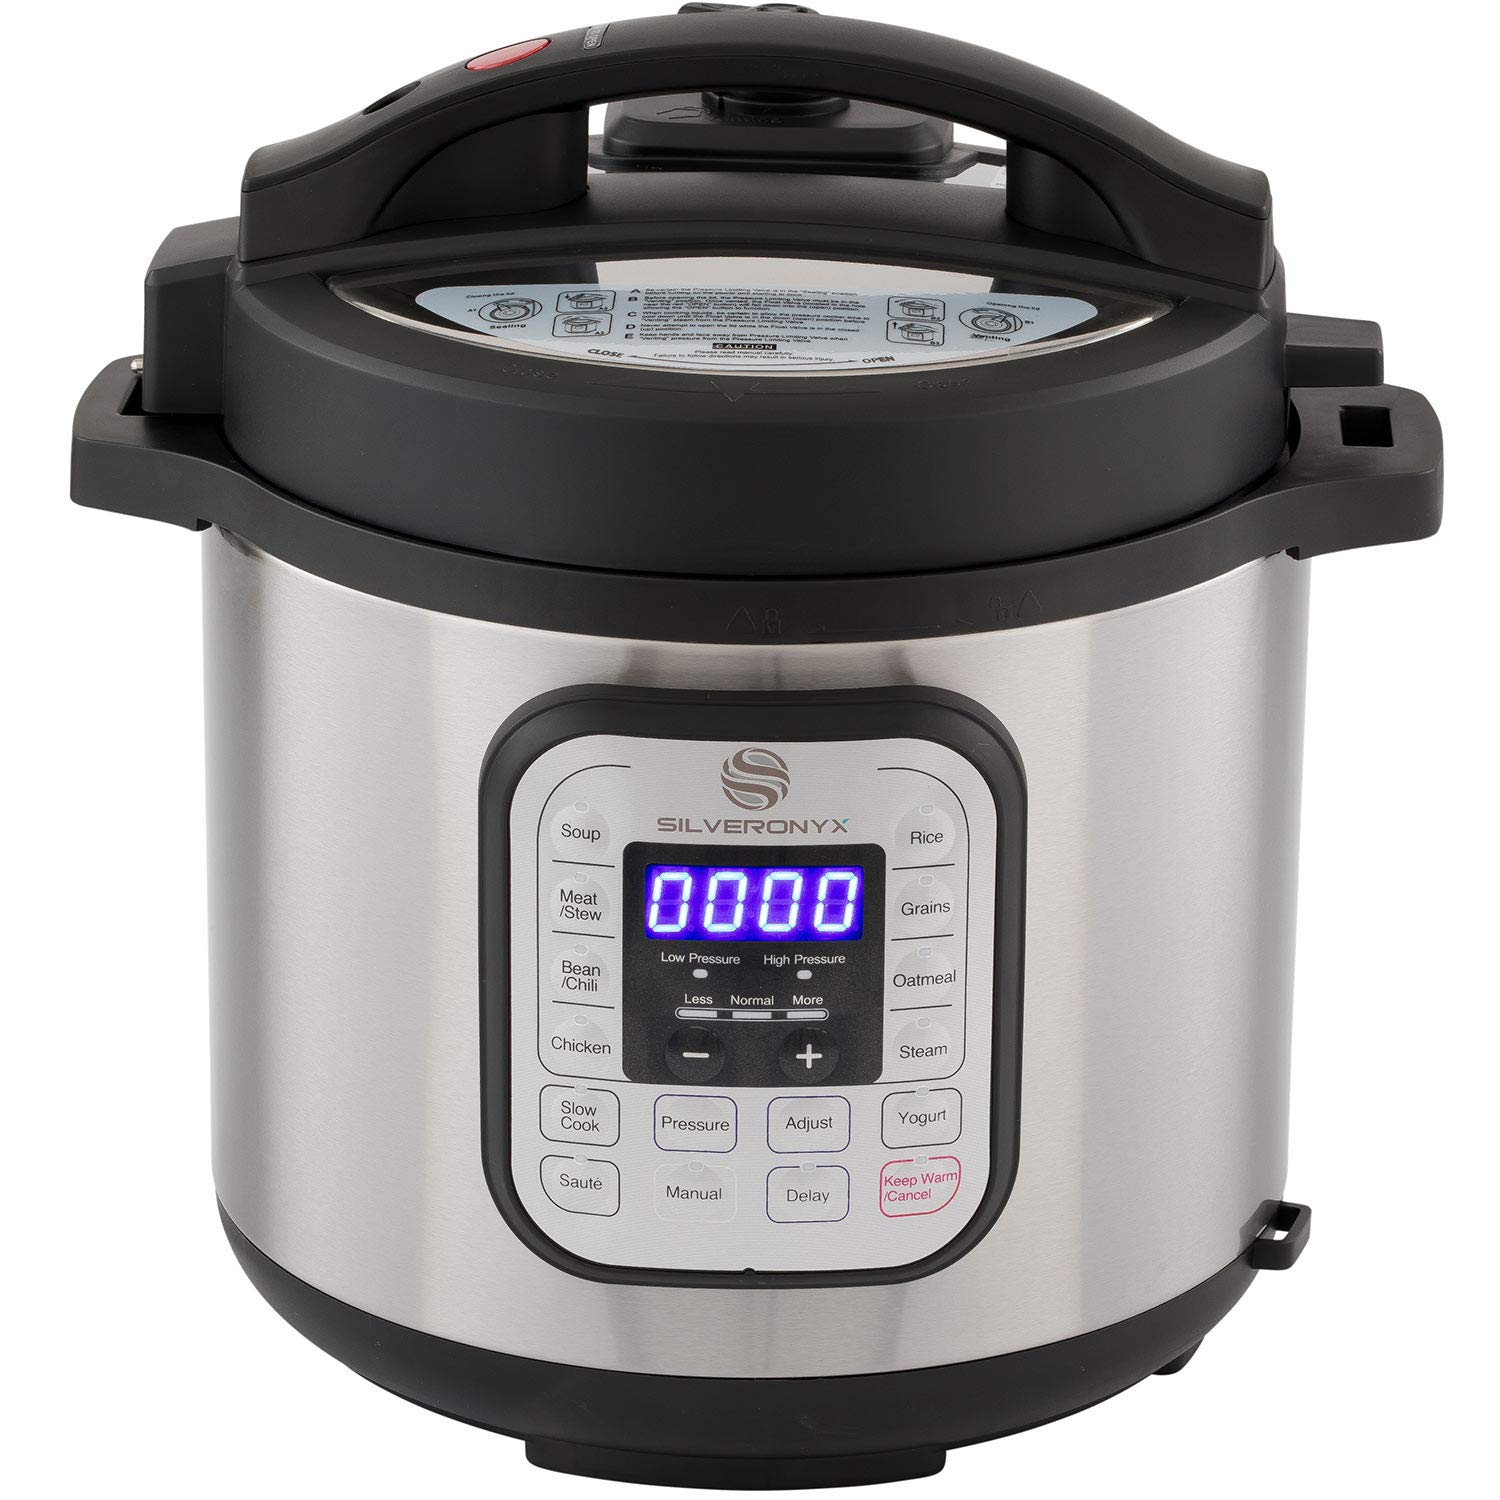 Multi-pot 10-in-1 Electric Pressure Cooker with Stainless Steel 6 Quart Pot, Instant 1000 Watt Pressure, Free Recipe Book Included. Programmable Slow Cook, Sauté, Rice, Steamer & Warmer by SilverOnyx